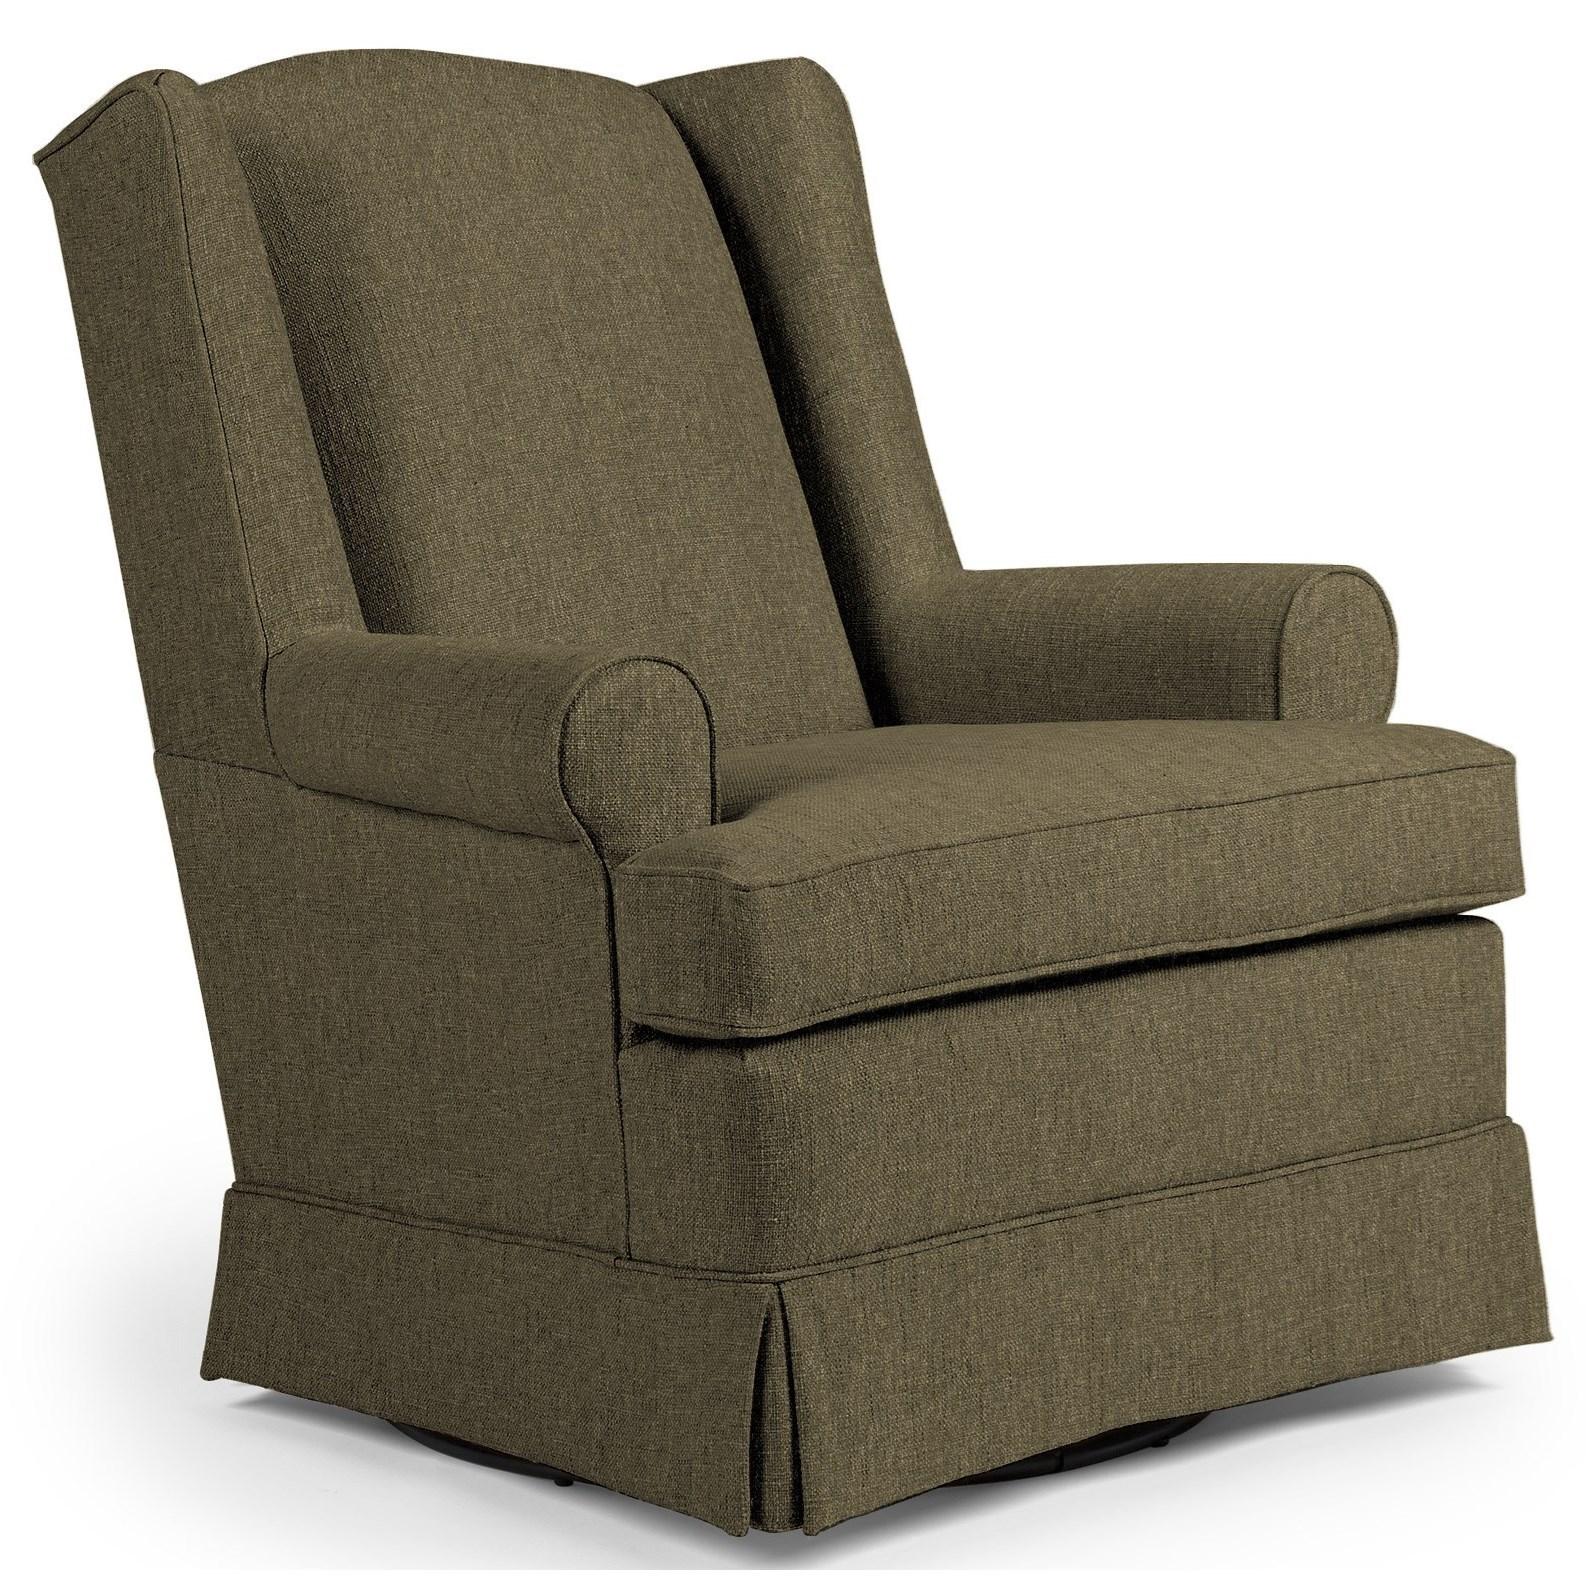 Swivel Roni Swivel Glider Chair by Best Home Furnishings at Walker's Furniture